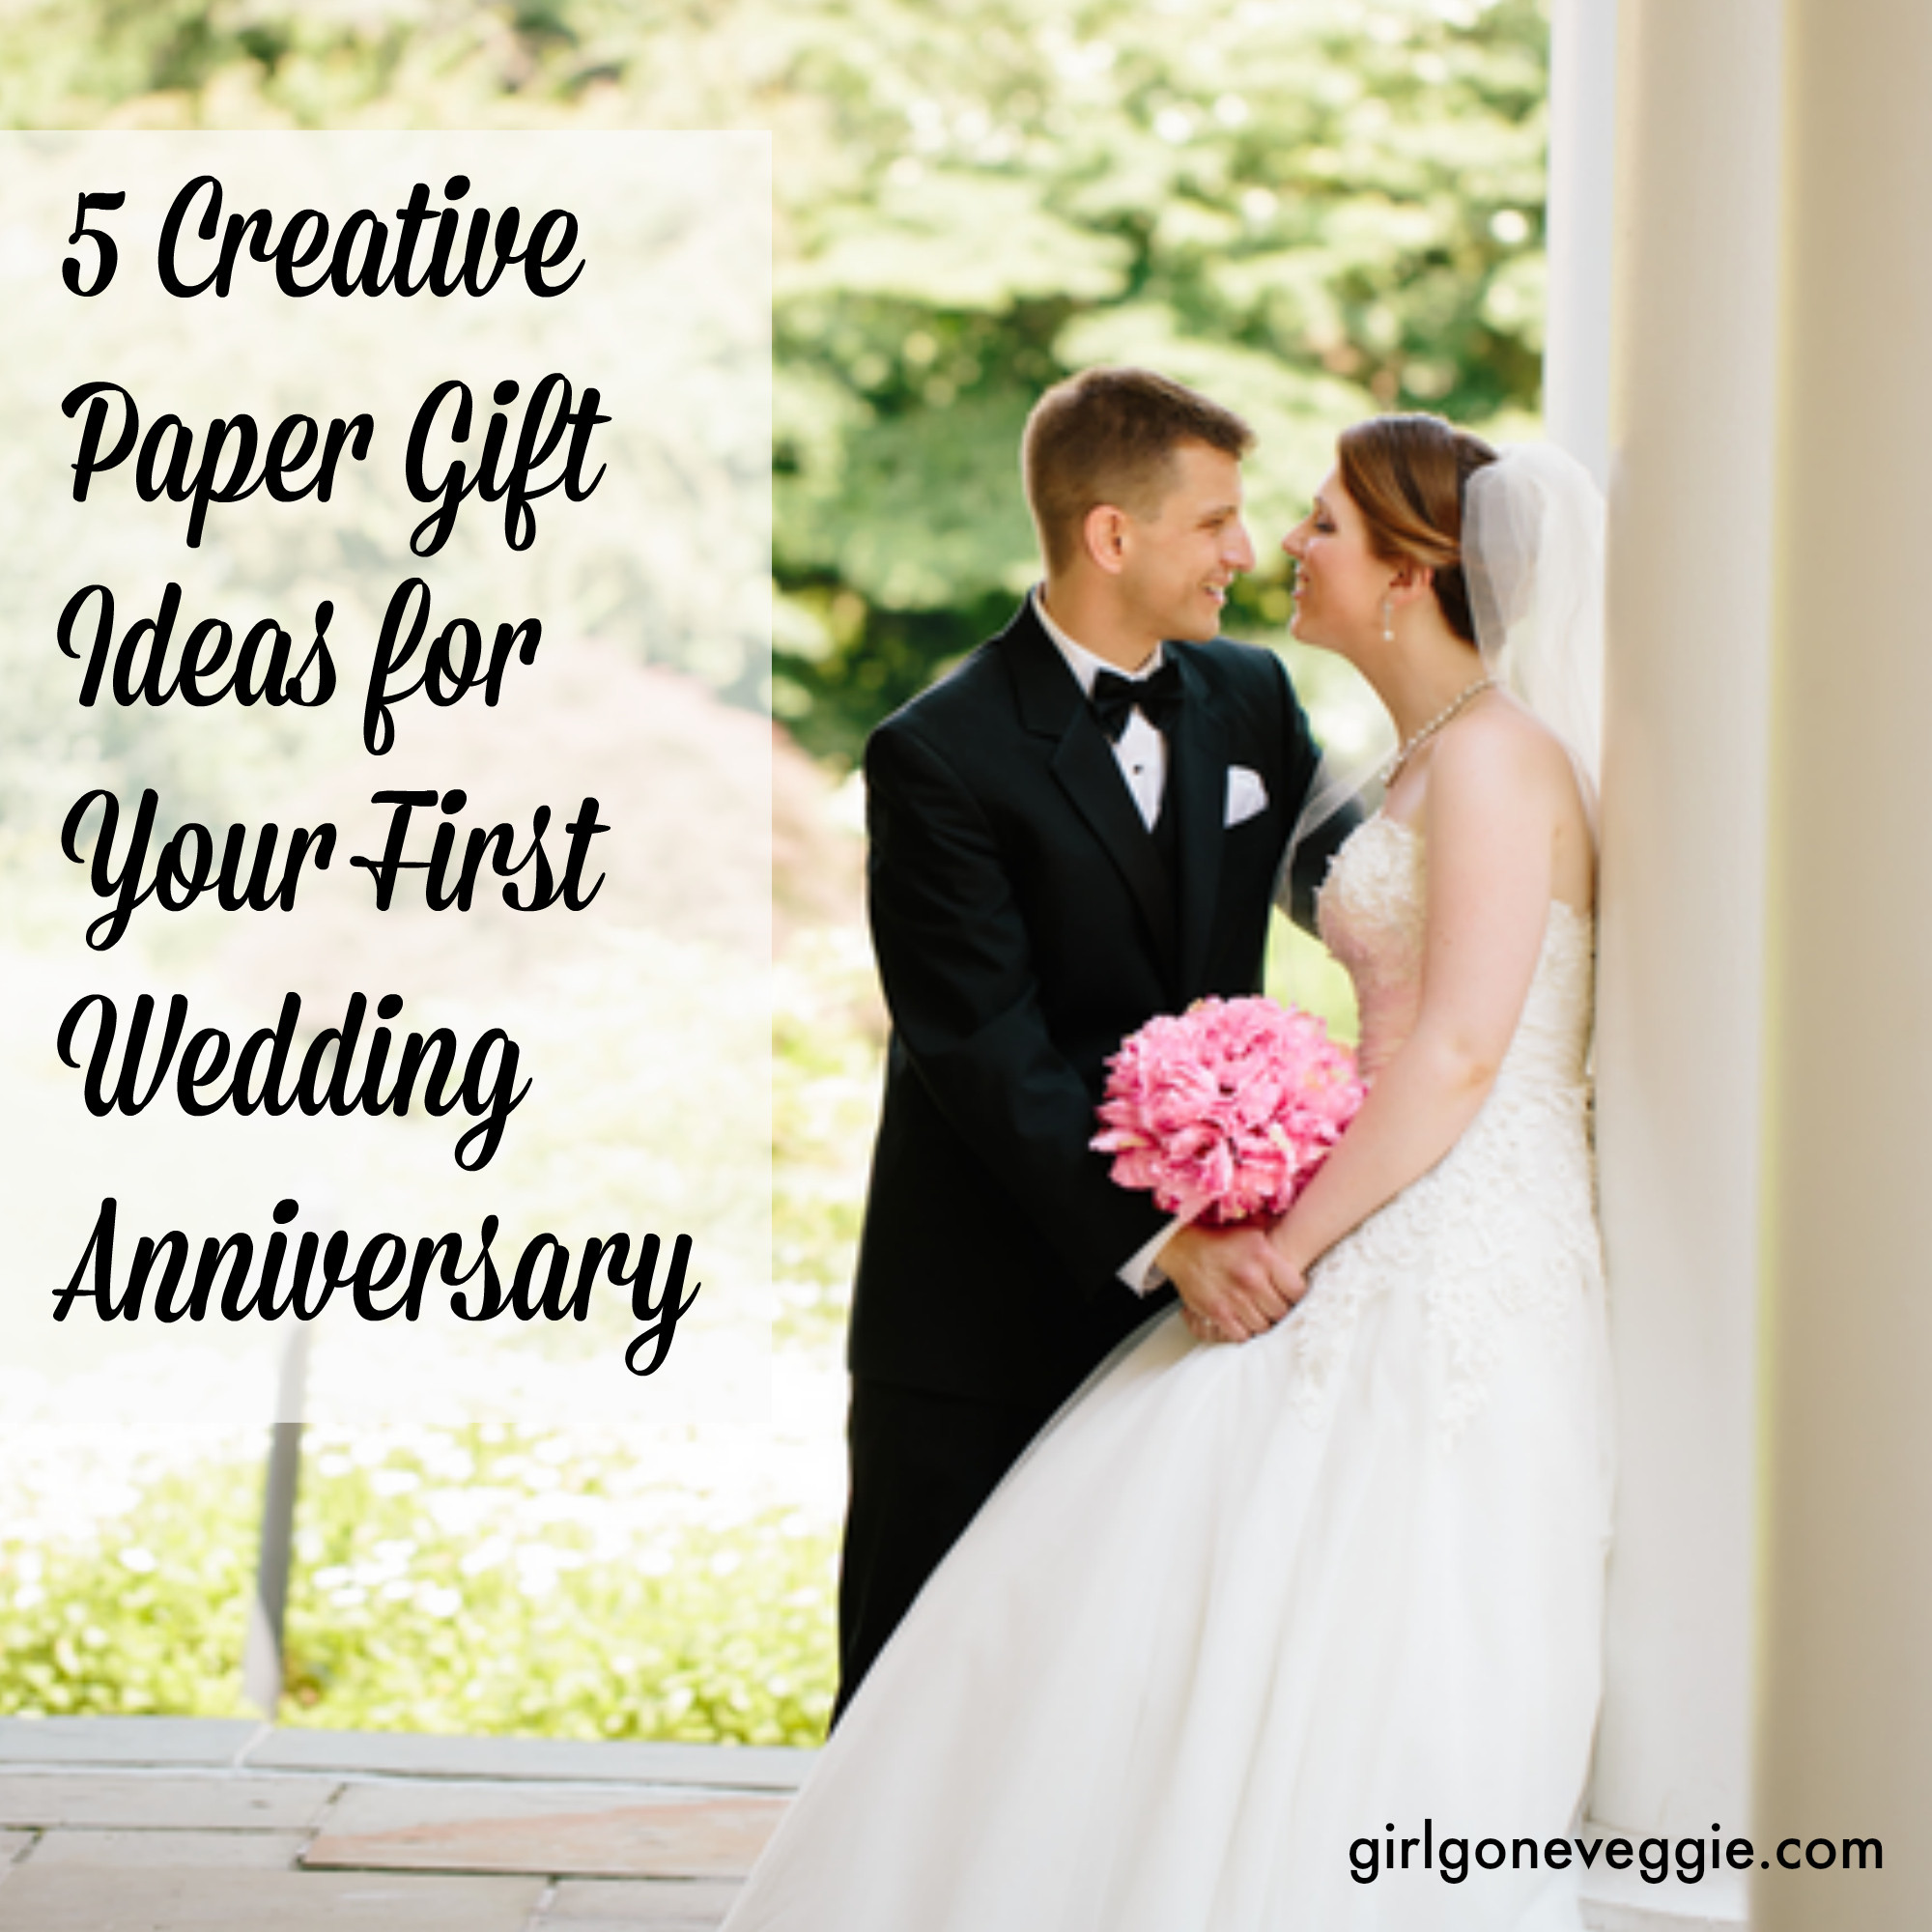 First Anniversary Gift Ideas For Her  5 Creative Paper Gift Ideas for Your 1st Wedding Anniversary